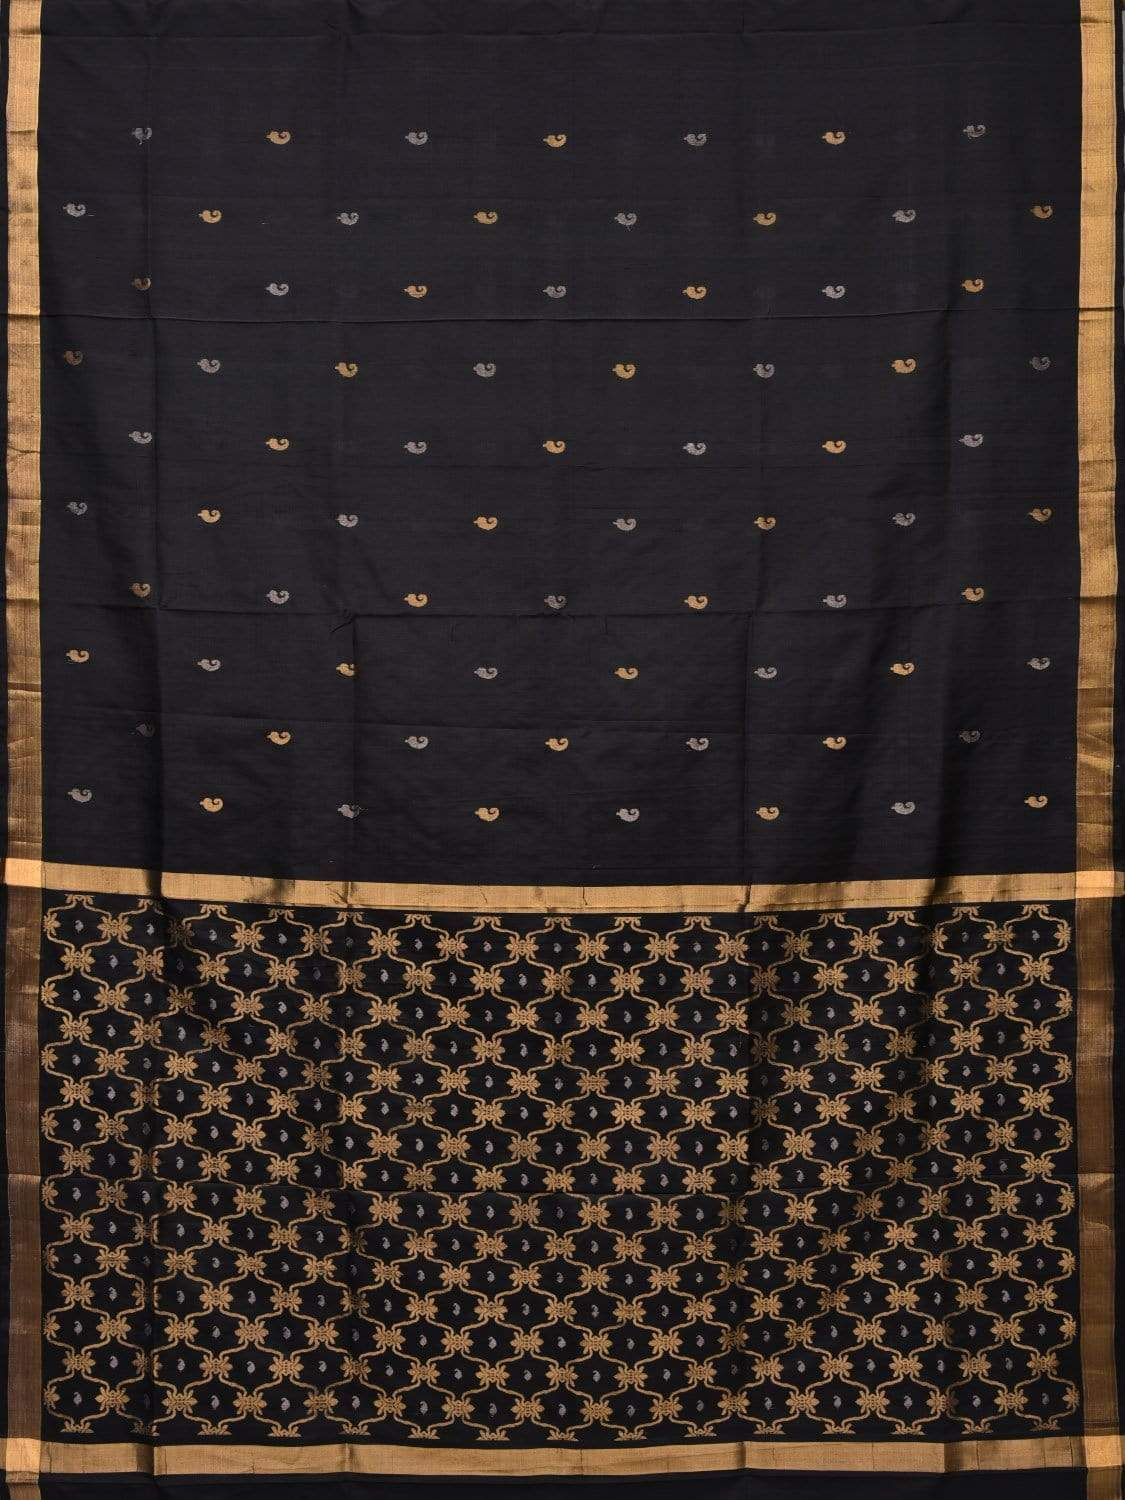 Black Uppada Silk Handloom Saree with Grill Pallu Design u1635